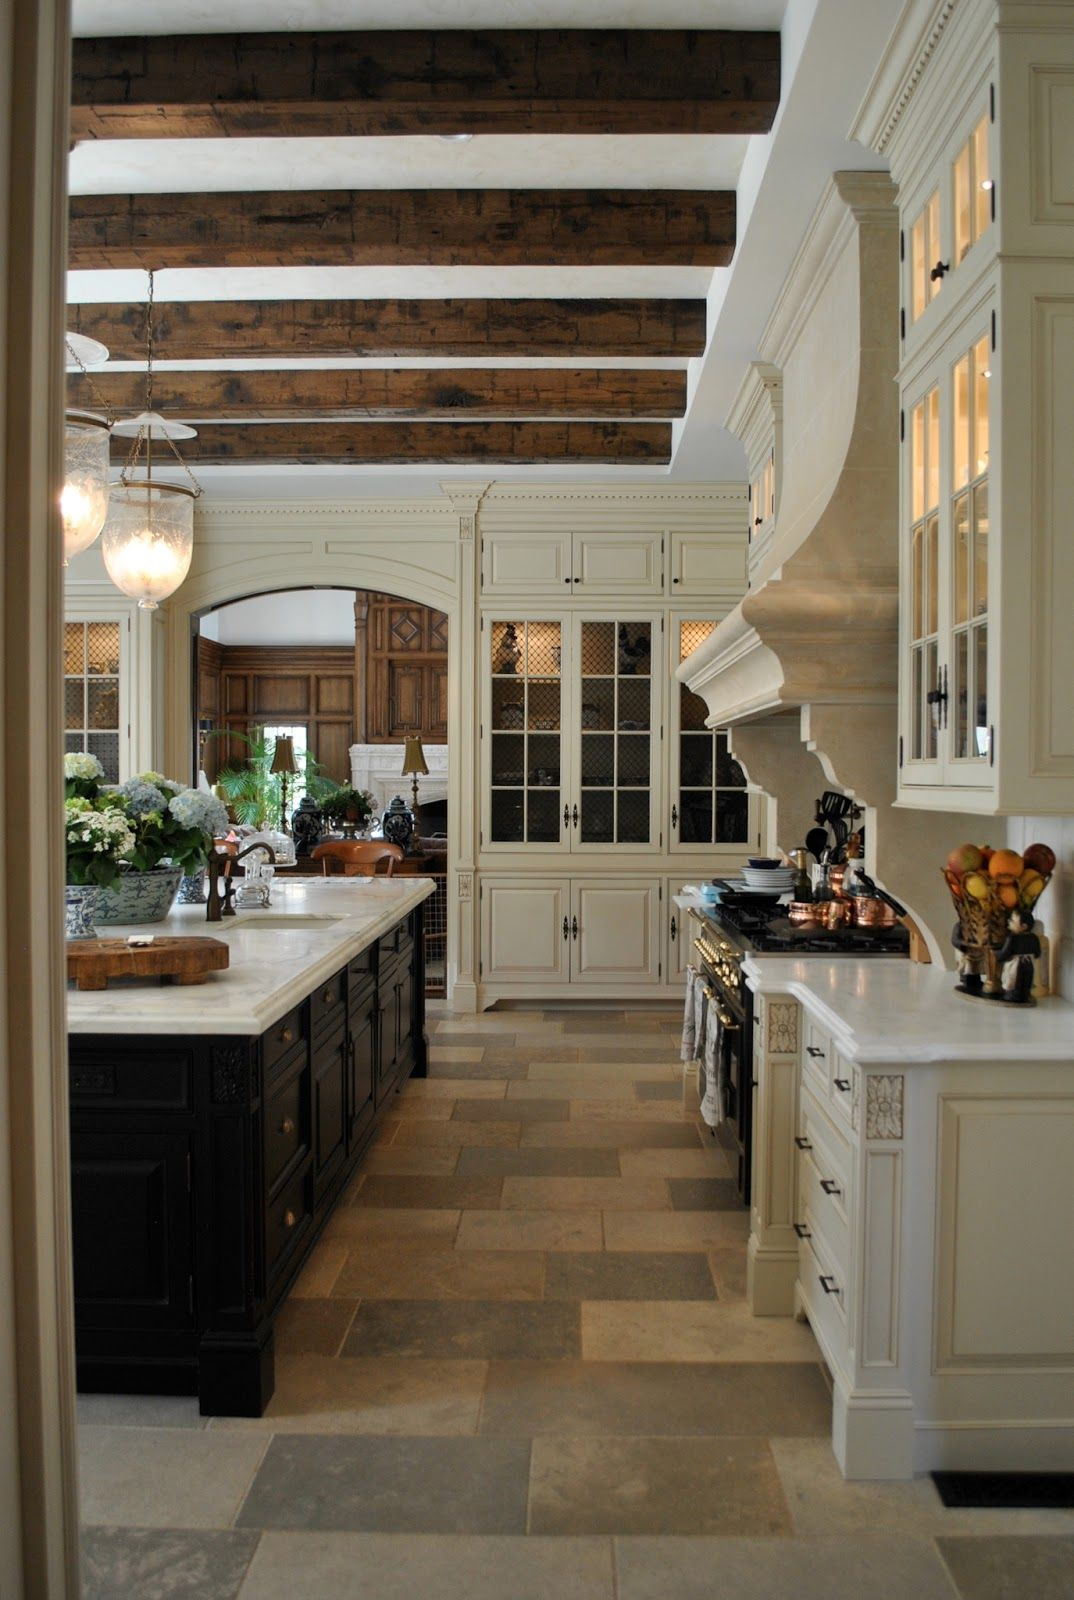 French Country Kitchen Decor Ideas Inspired by The Enchanted Home ...